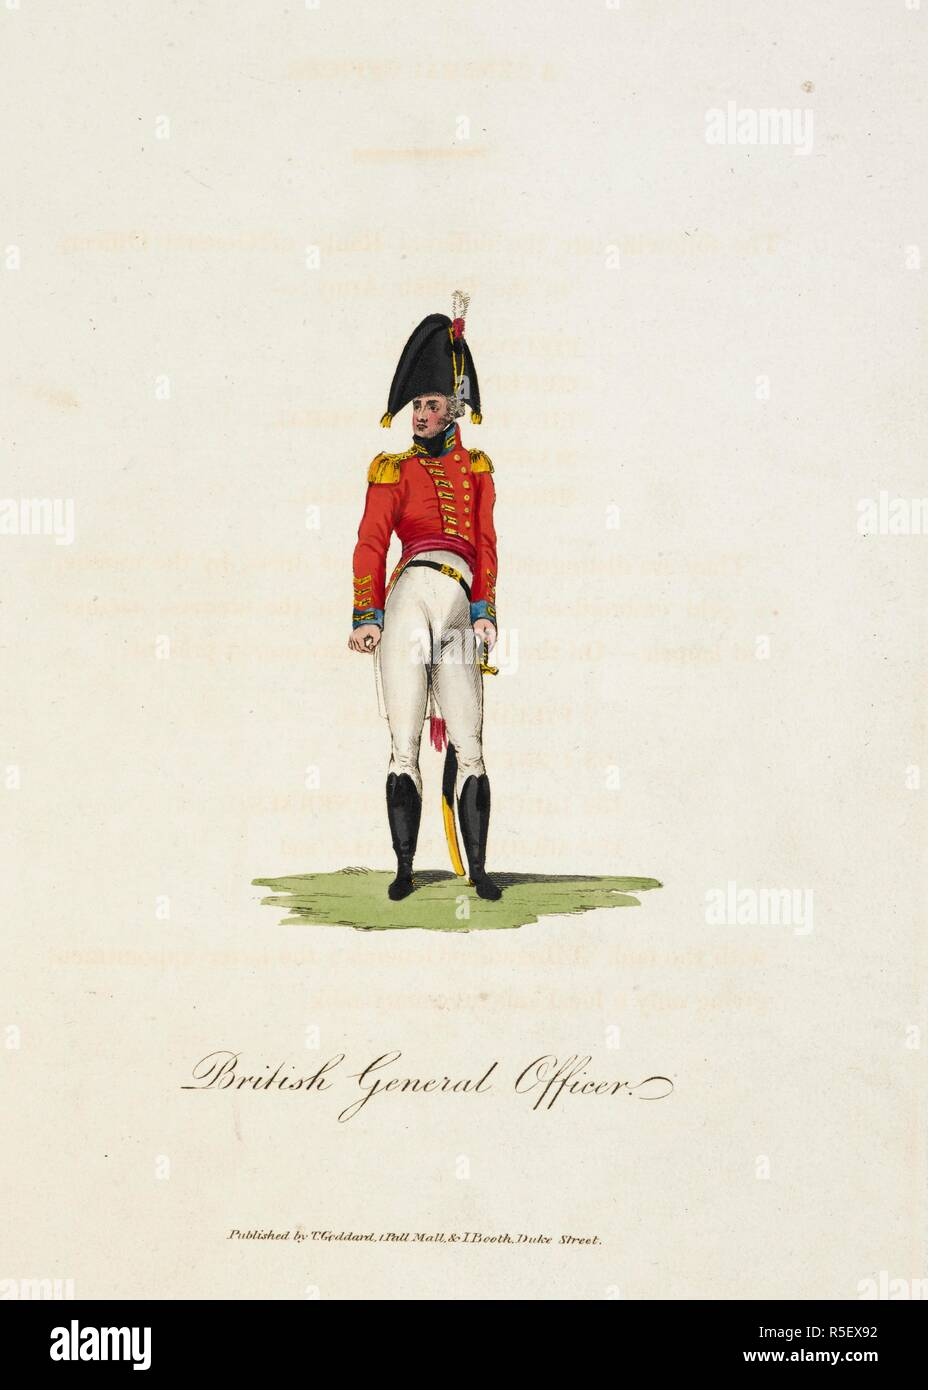 01c860b04b0 British General Officer. He wears a cocked hat and red jacket with  epaulettes